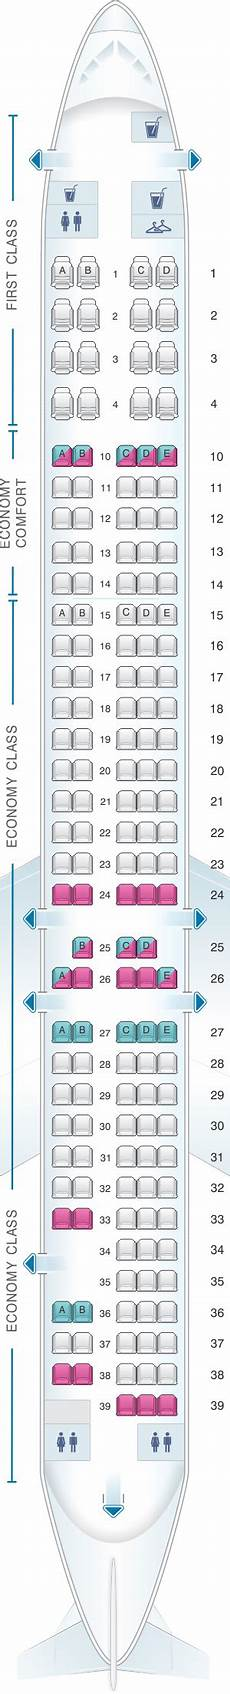 Delta Boeing Douglas Md 80 Seating Chart Seat Map Delta Air Lines Mcdonnell Douglas Md 90 Seatmaestro